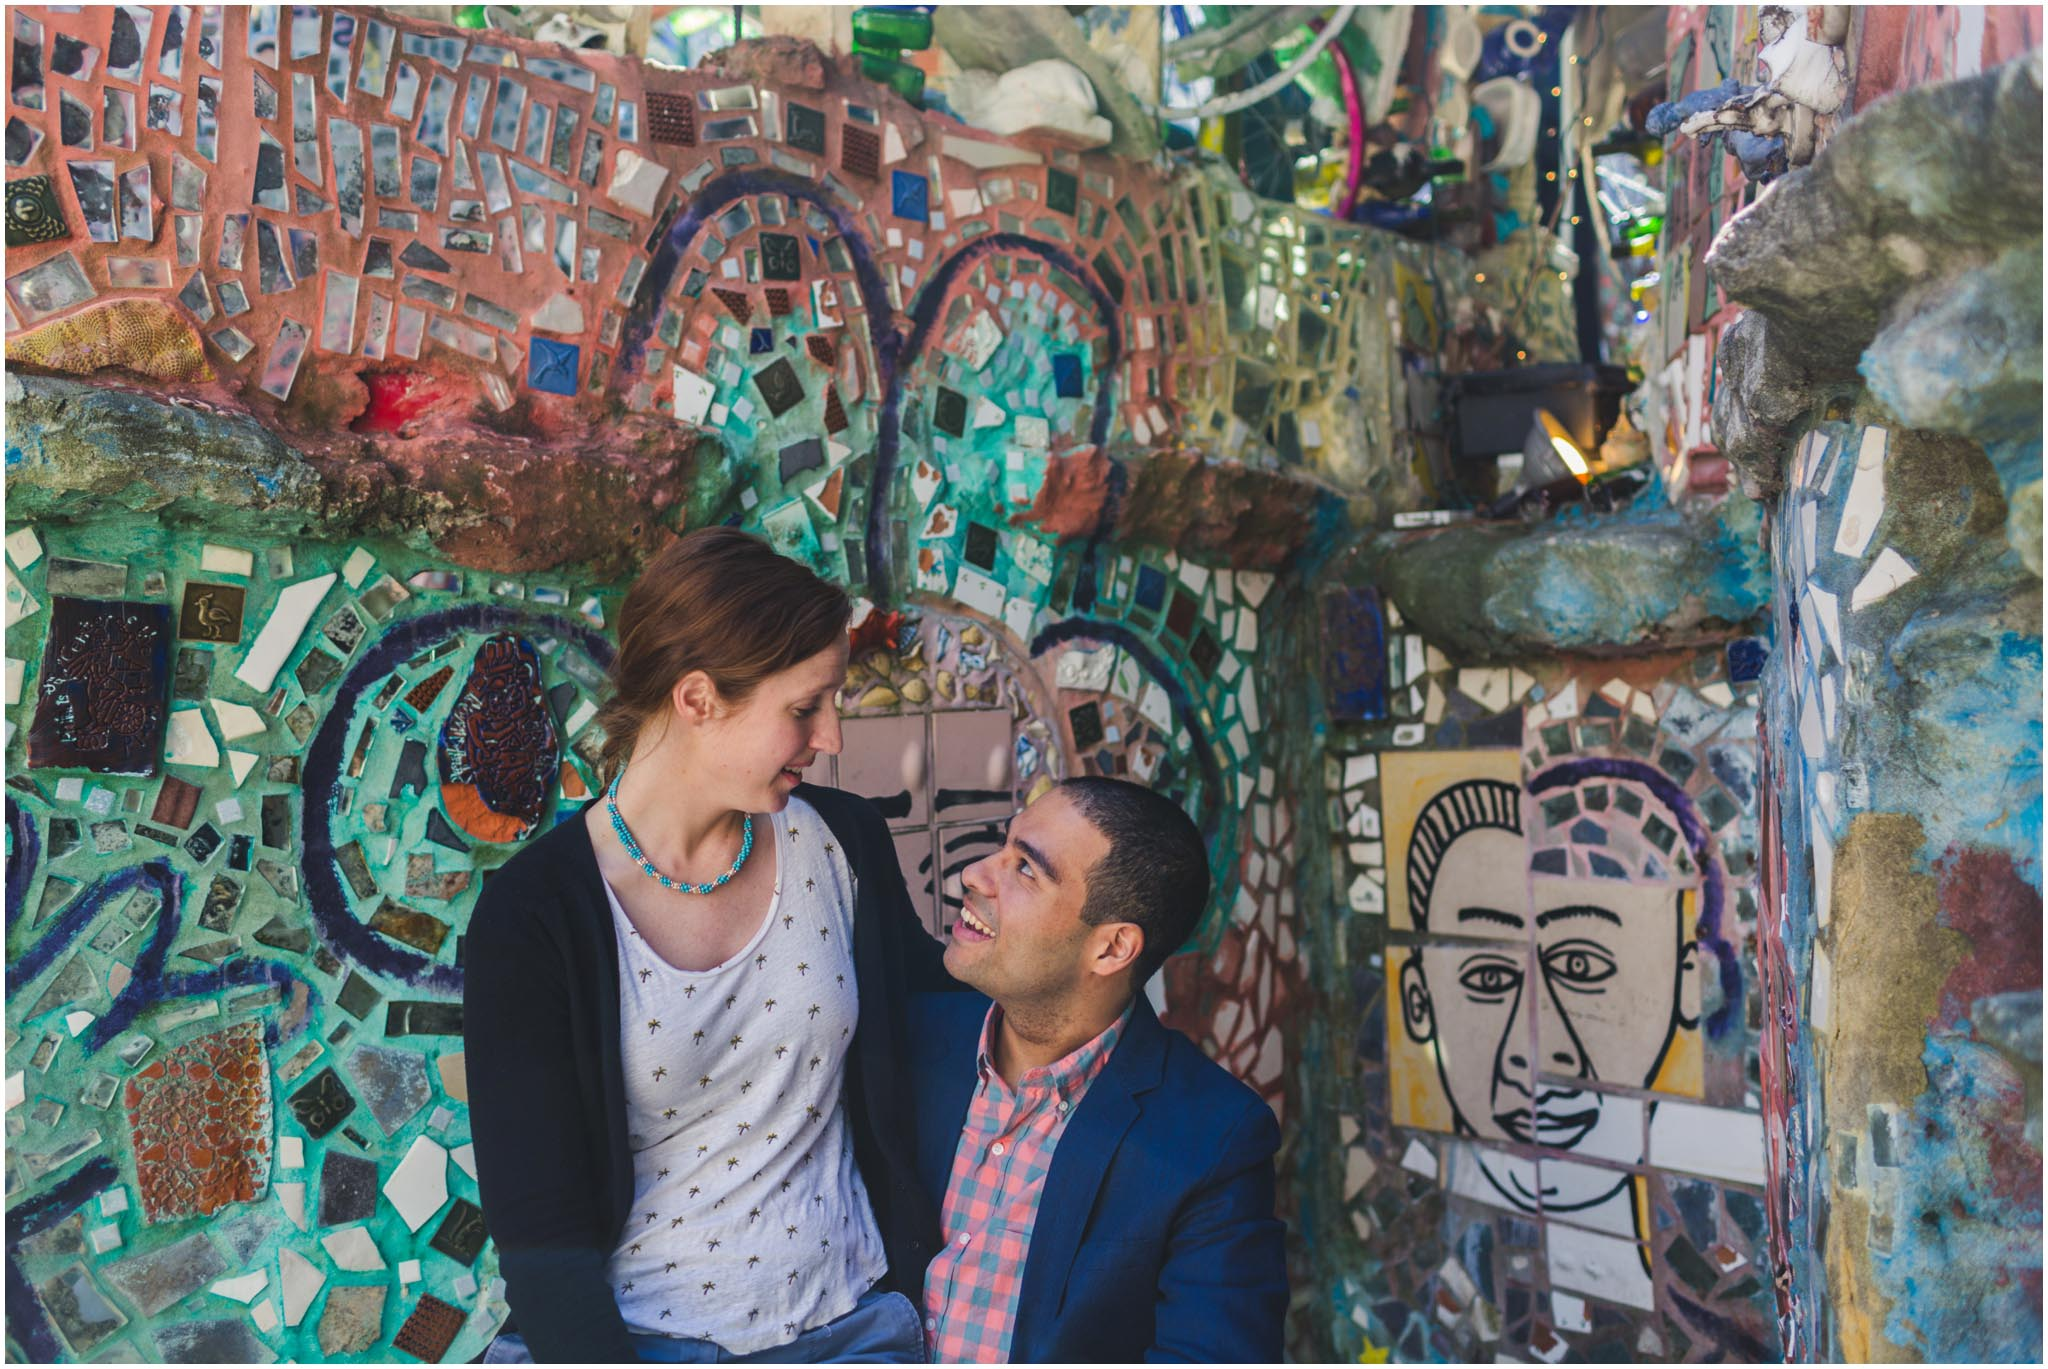 Philadelphia's Magic Gardens, engagement, wedding